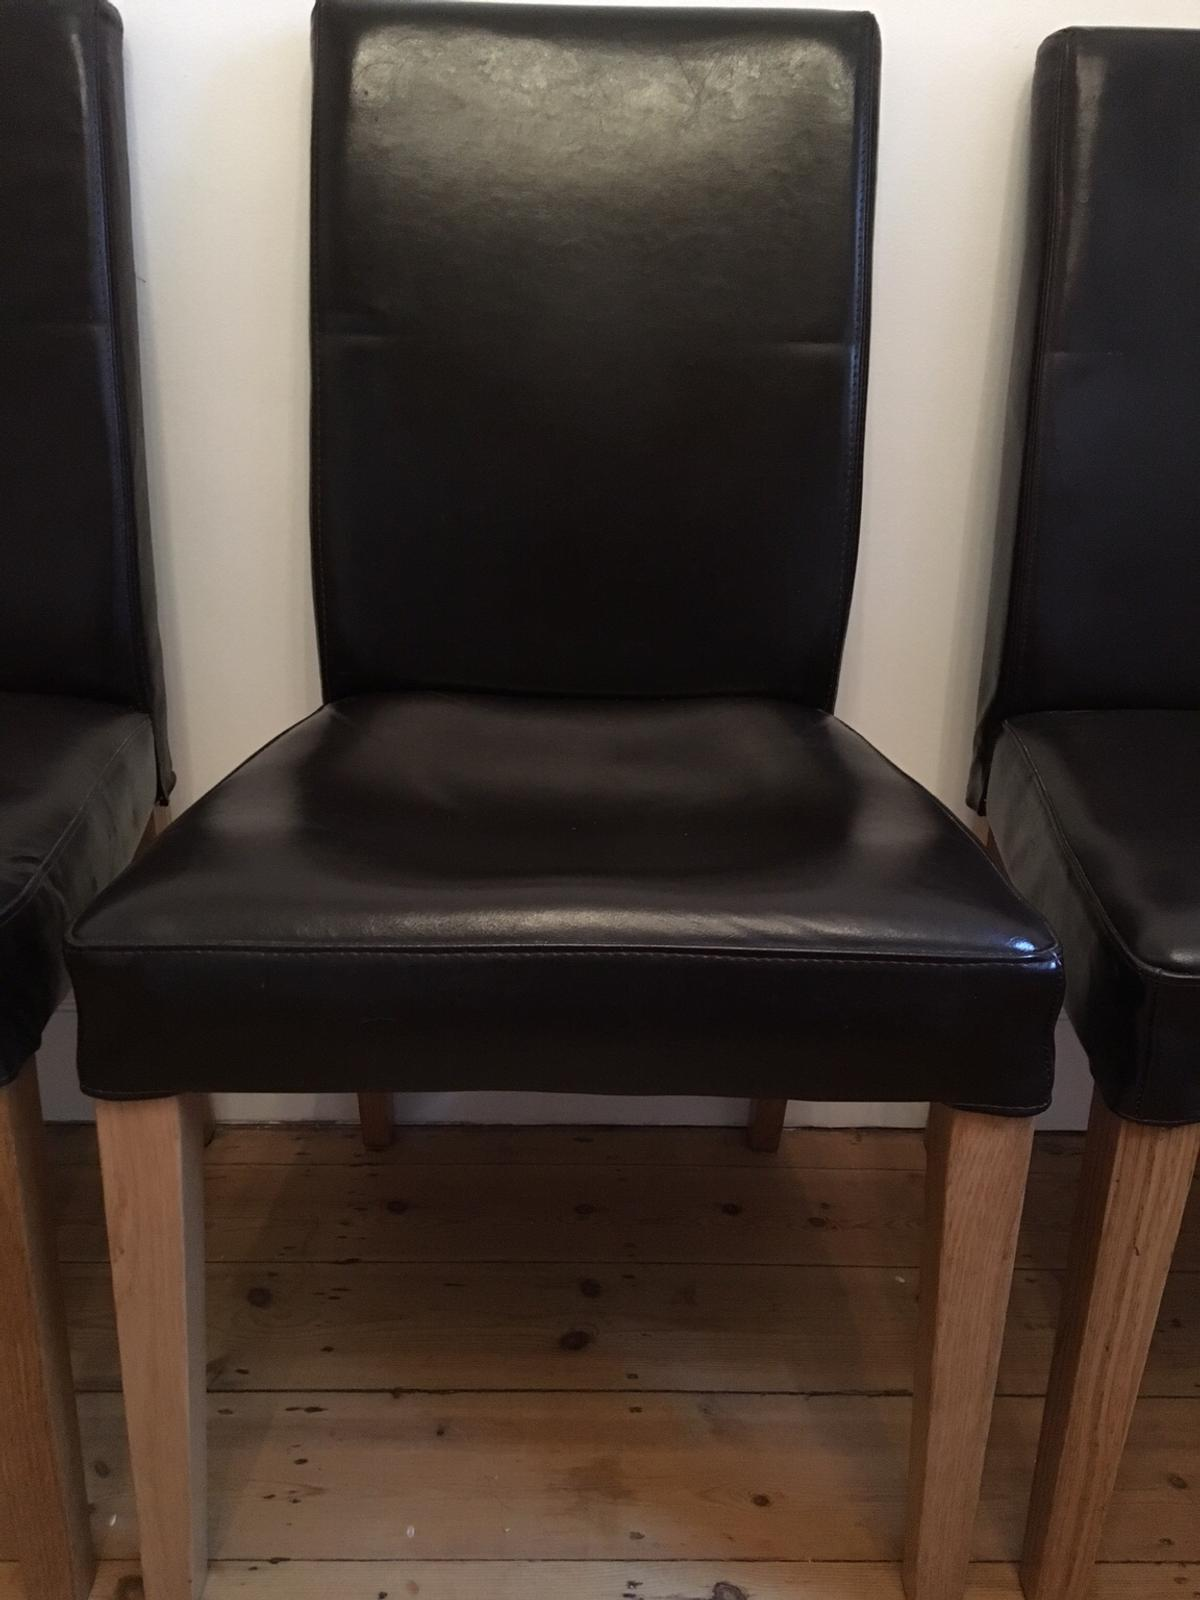 4 Brown Leather Dining Room Chairs Ikea In So17 Southampton For 40 00 For Sale Shpock